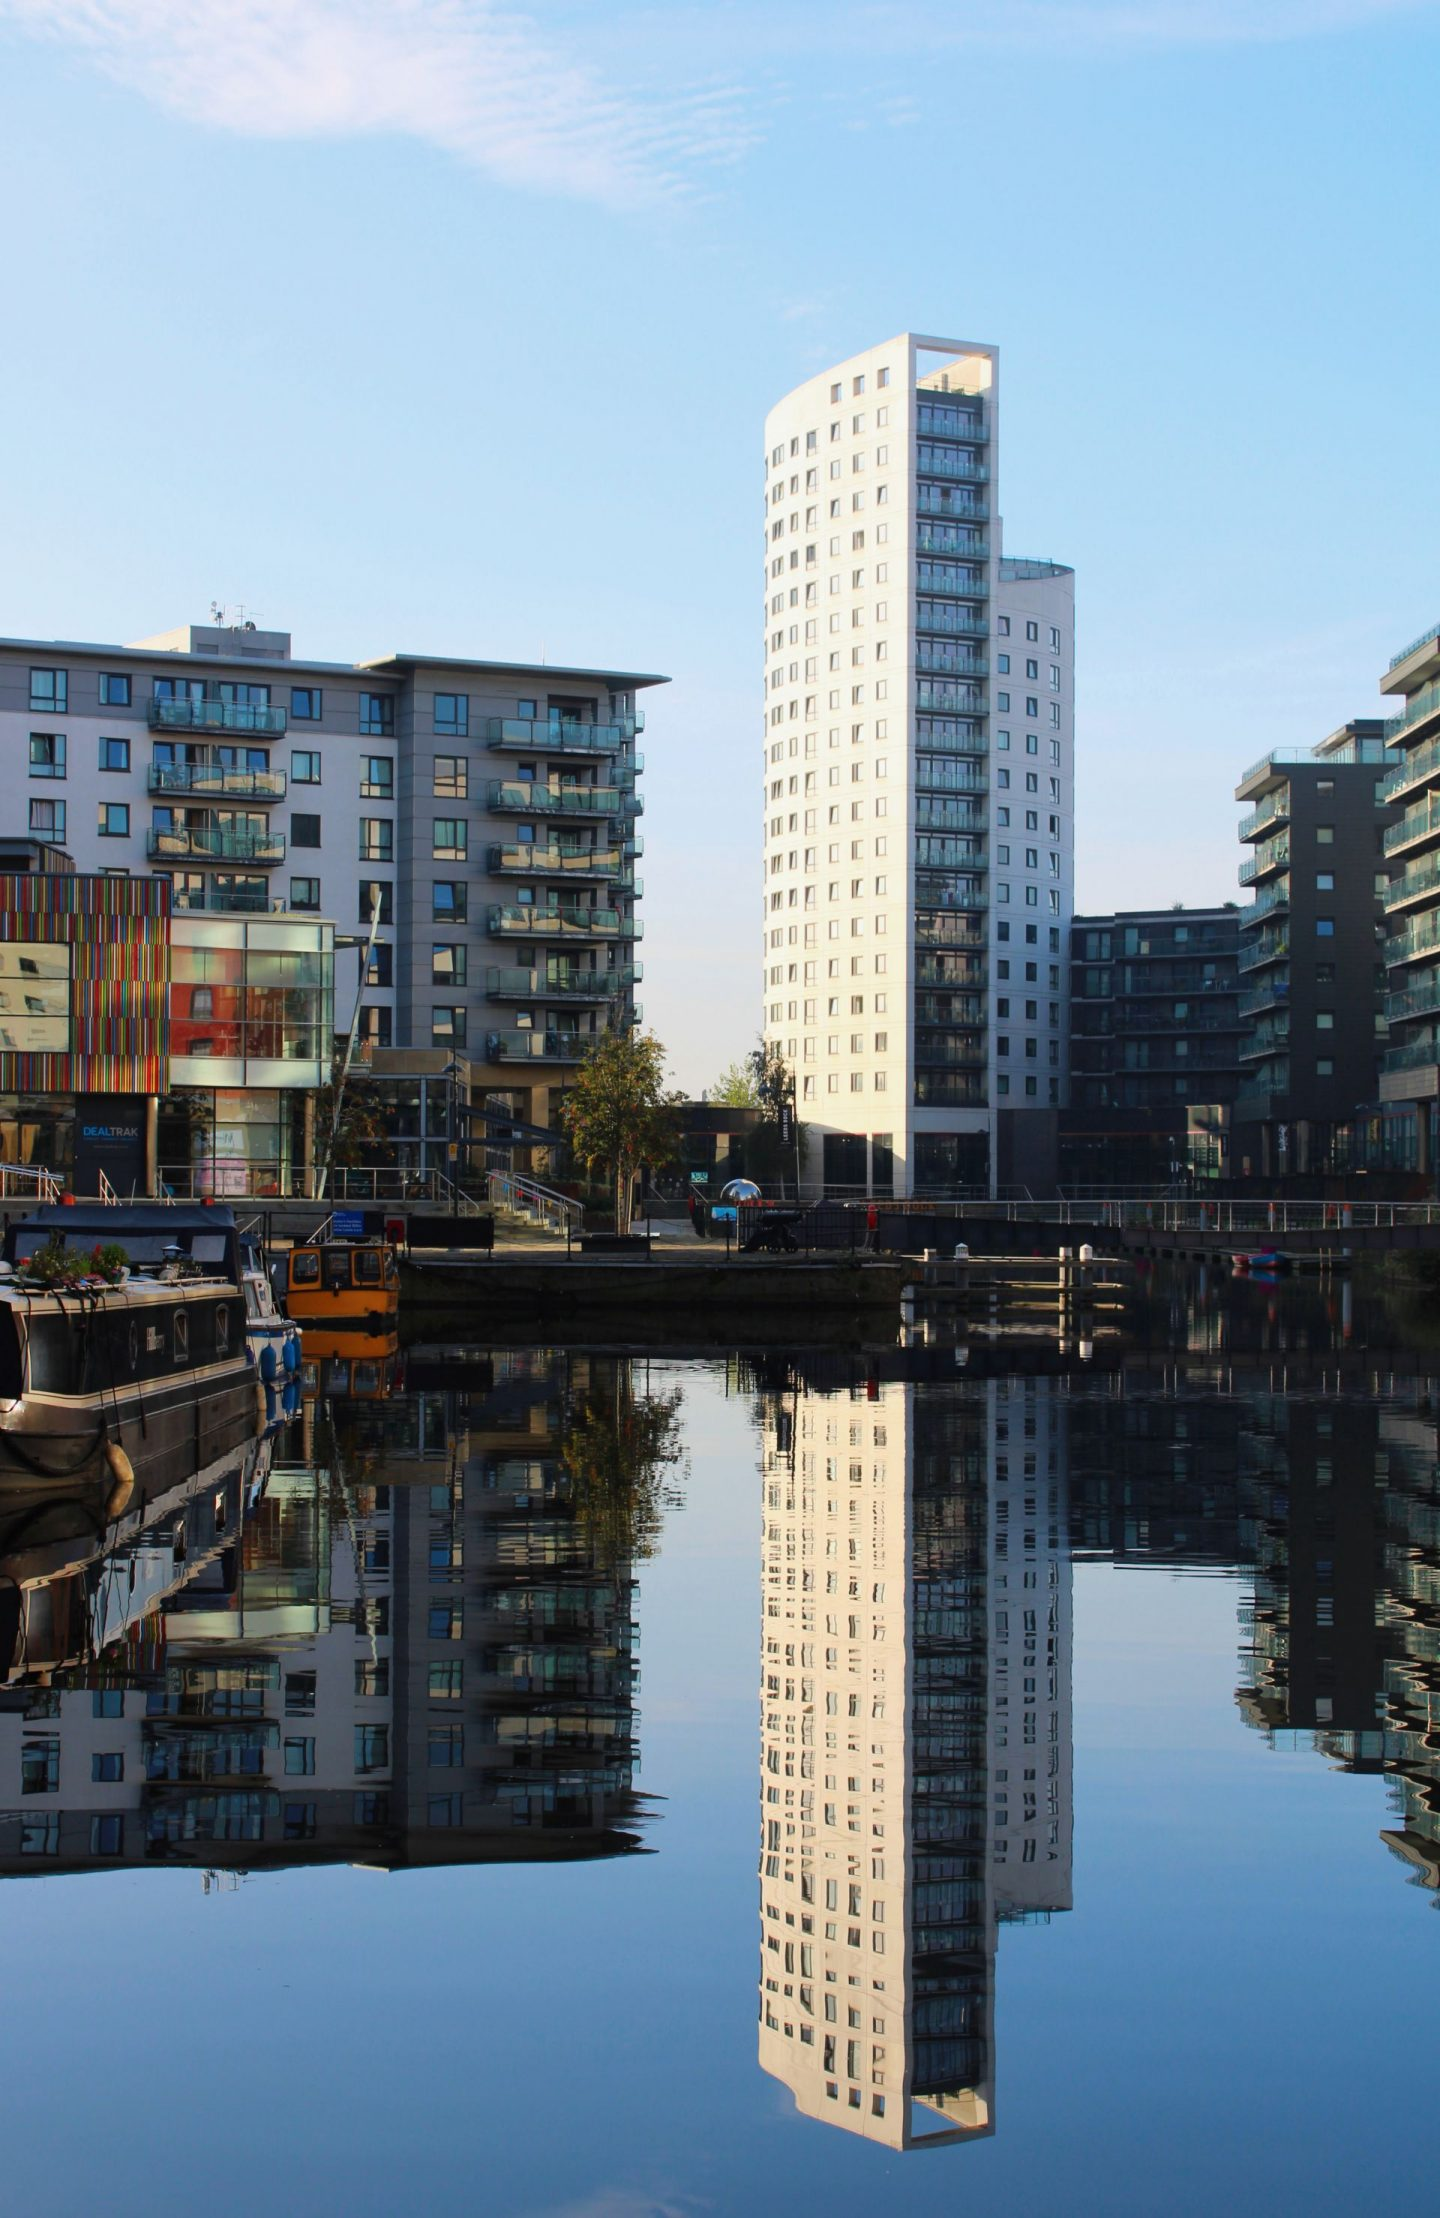 things to do in leeds city centre - sky scraper being reflected in the water at leeds dock, on a sunny day